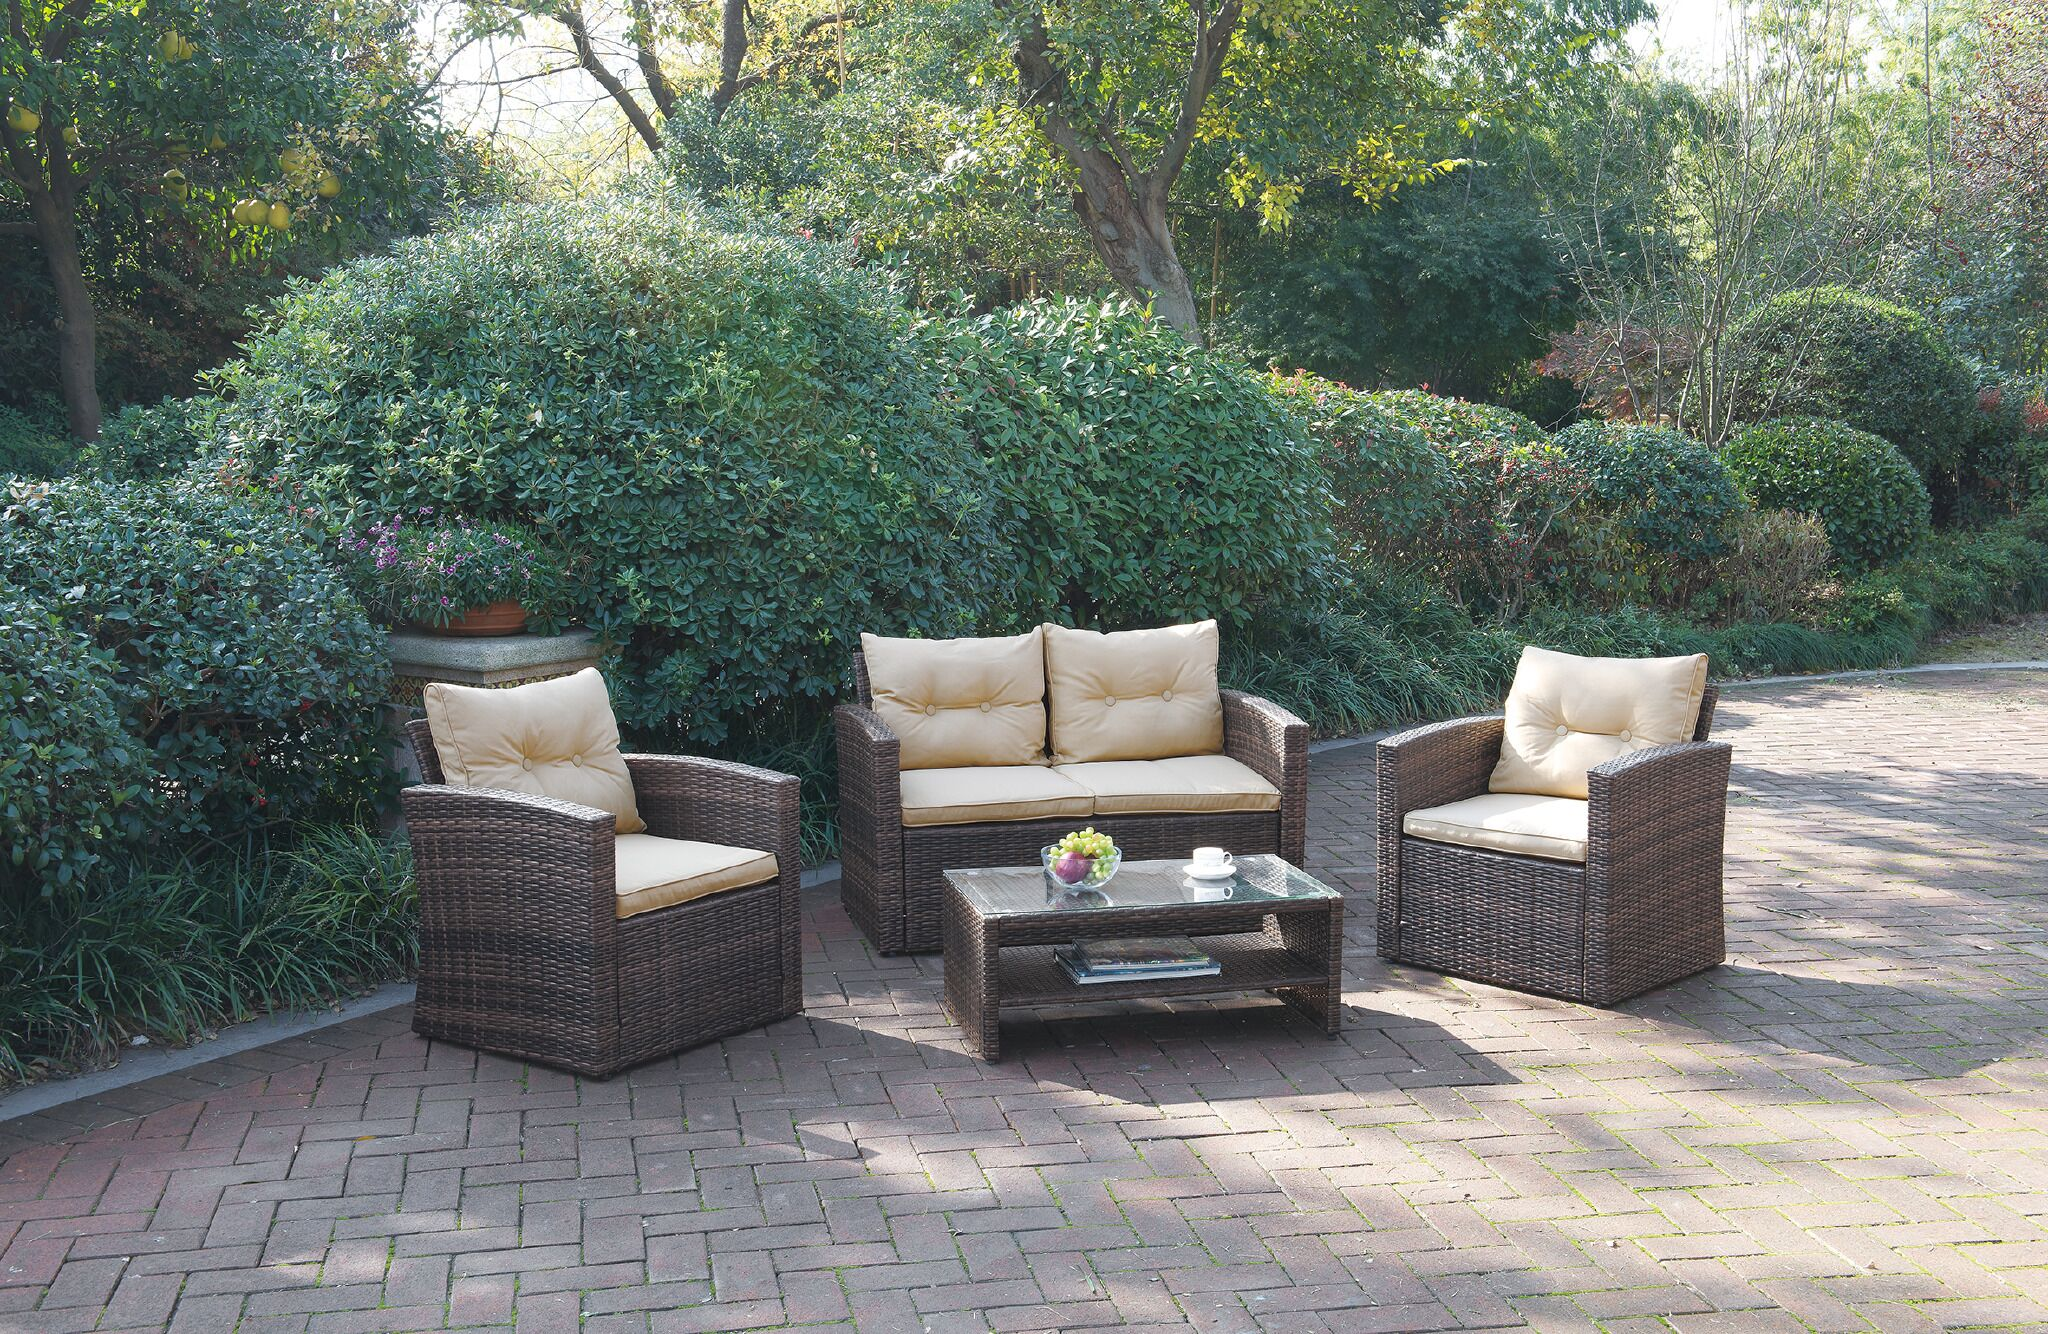 Weirsky 4 Piece Rattan Sofa Set with Cushions